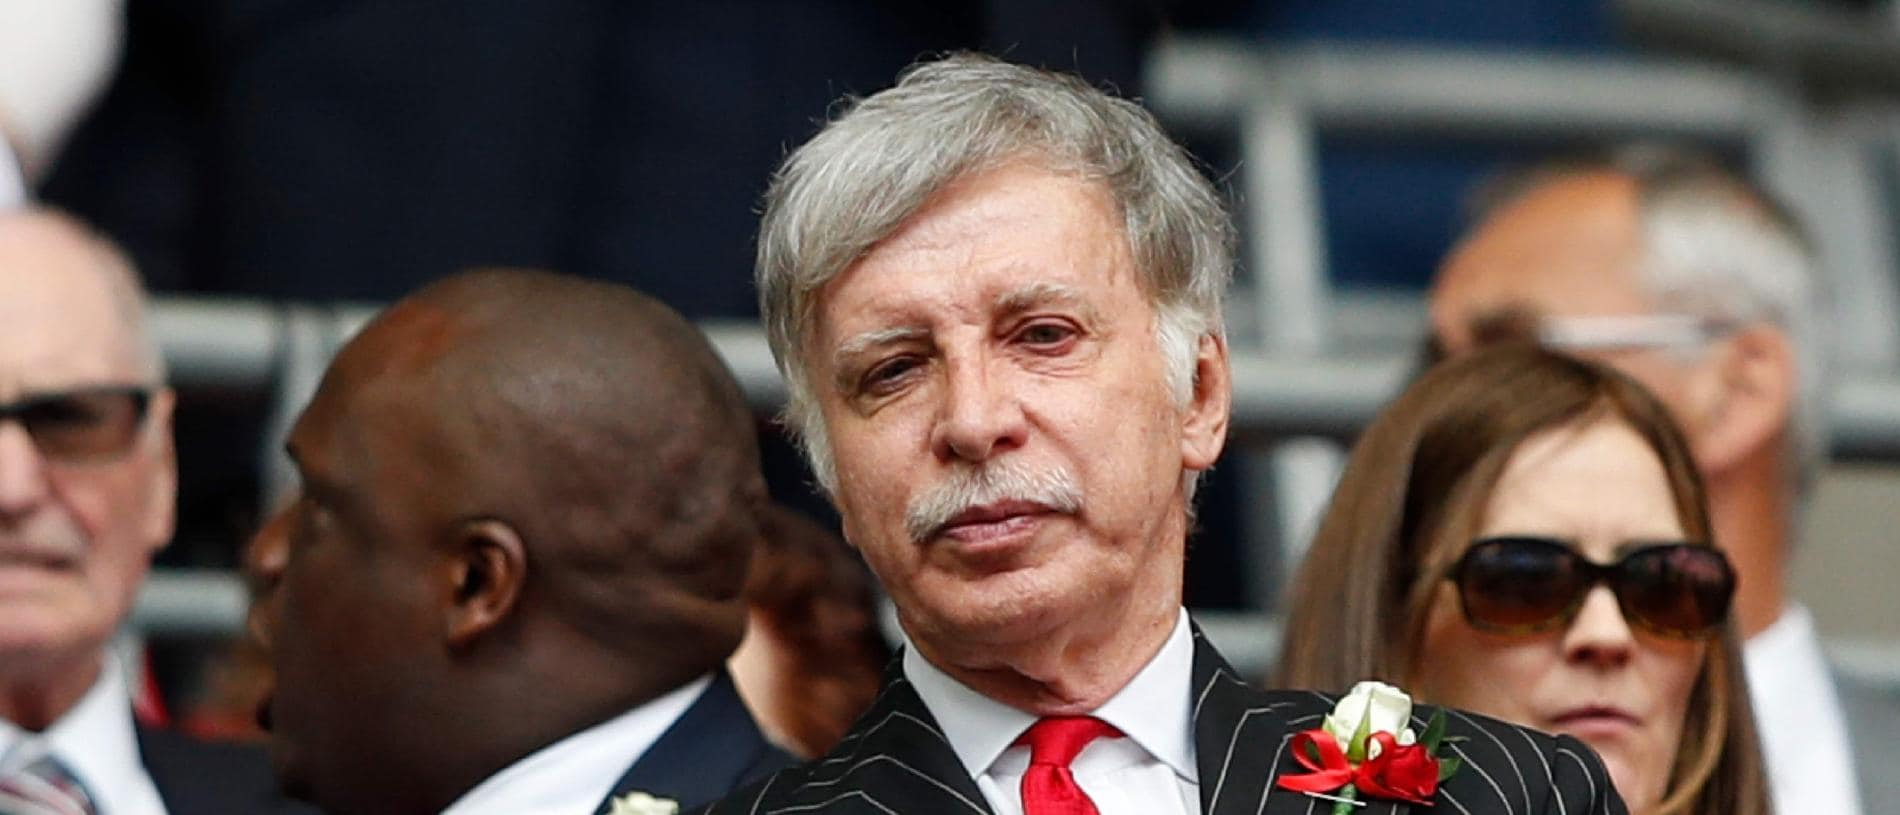 (FILES) In this file photo taken on May 27, 2017 Arsenal's US owner Stan Kroenke waits for kick off in the English FA Cup final football match between Arsenal and Chelsea at Wembley stadium in London on May 27, 2017. Arsenal majority shareholder Stan Kroenke on August 7, 2018 announced an offer to buy the entire British football club, valuing it at £1.8 billion ($2.3 billion, 2 billion euros). / AFP PHOTO / Adrian DENNIS / NOT FOR MARKETING OR ADVERTISING USE / RESTRICTED TO EDITORIAL USE